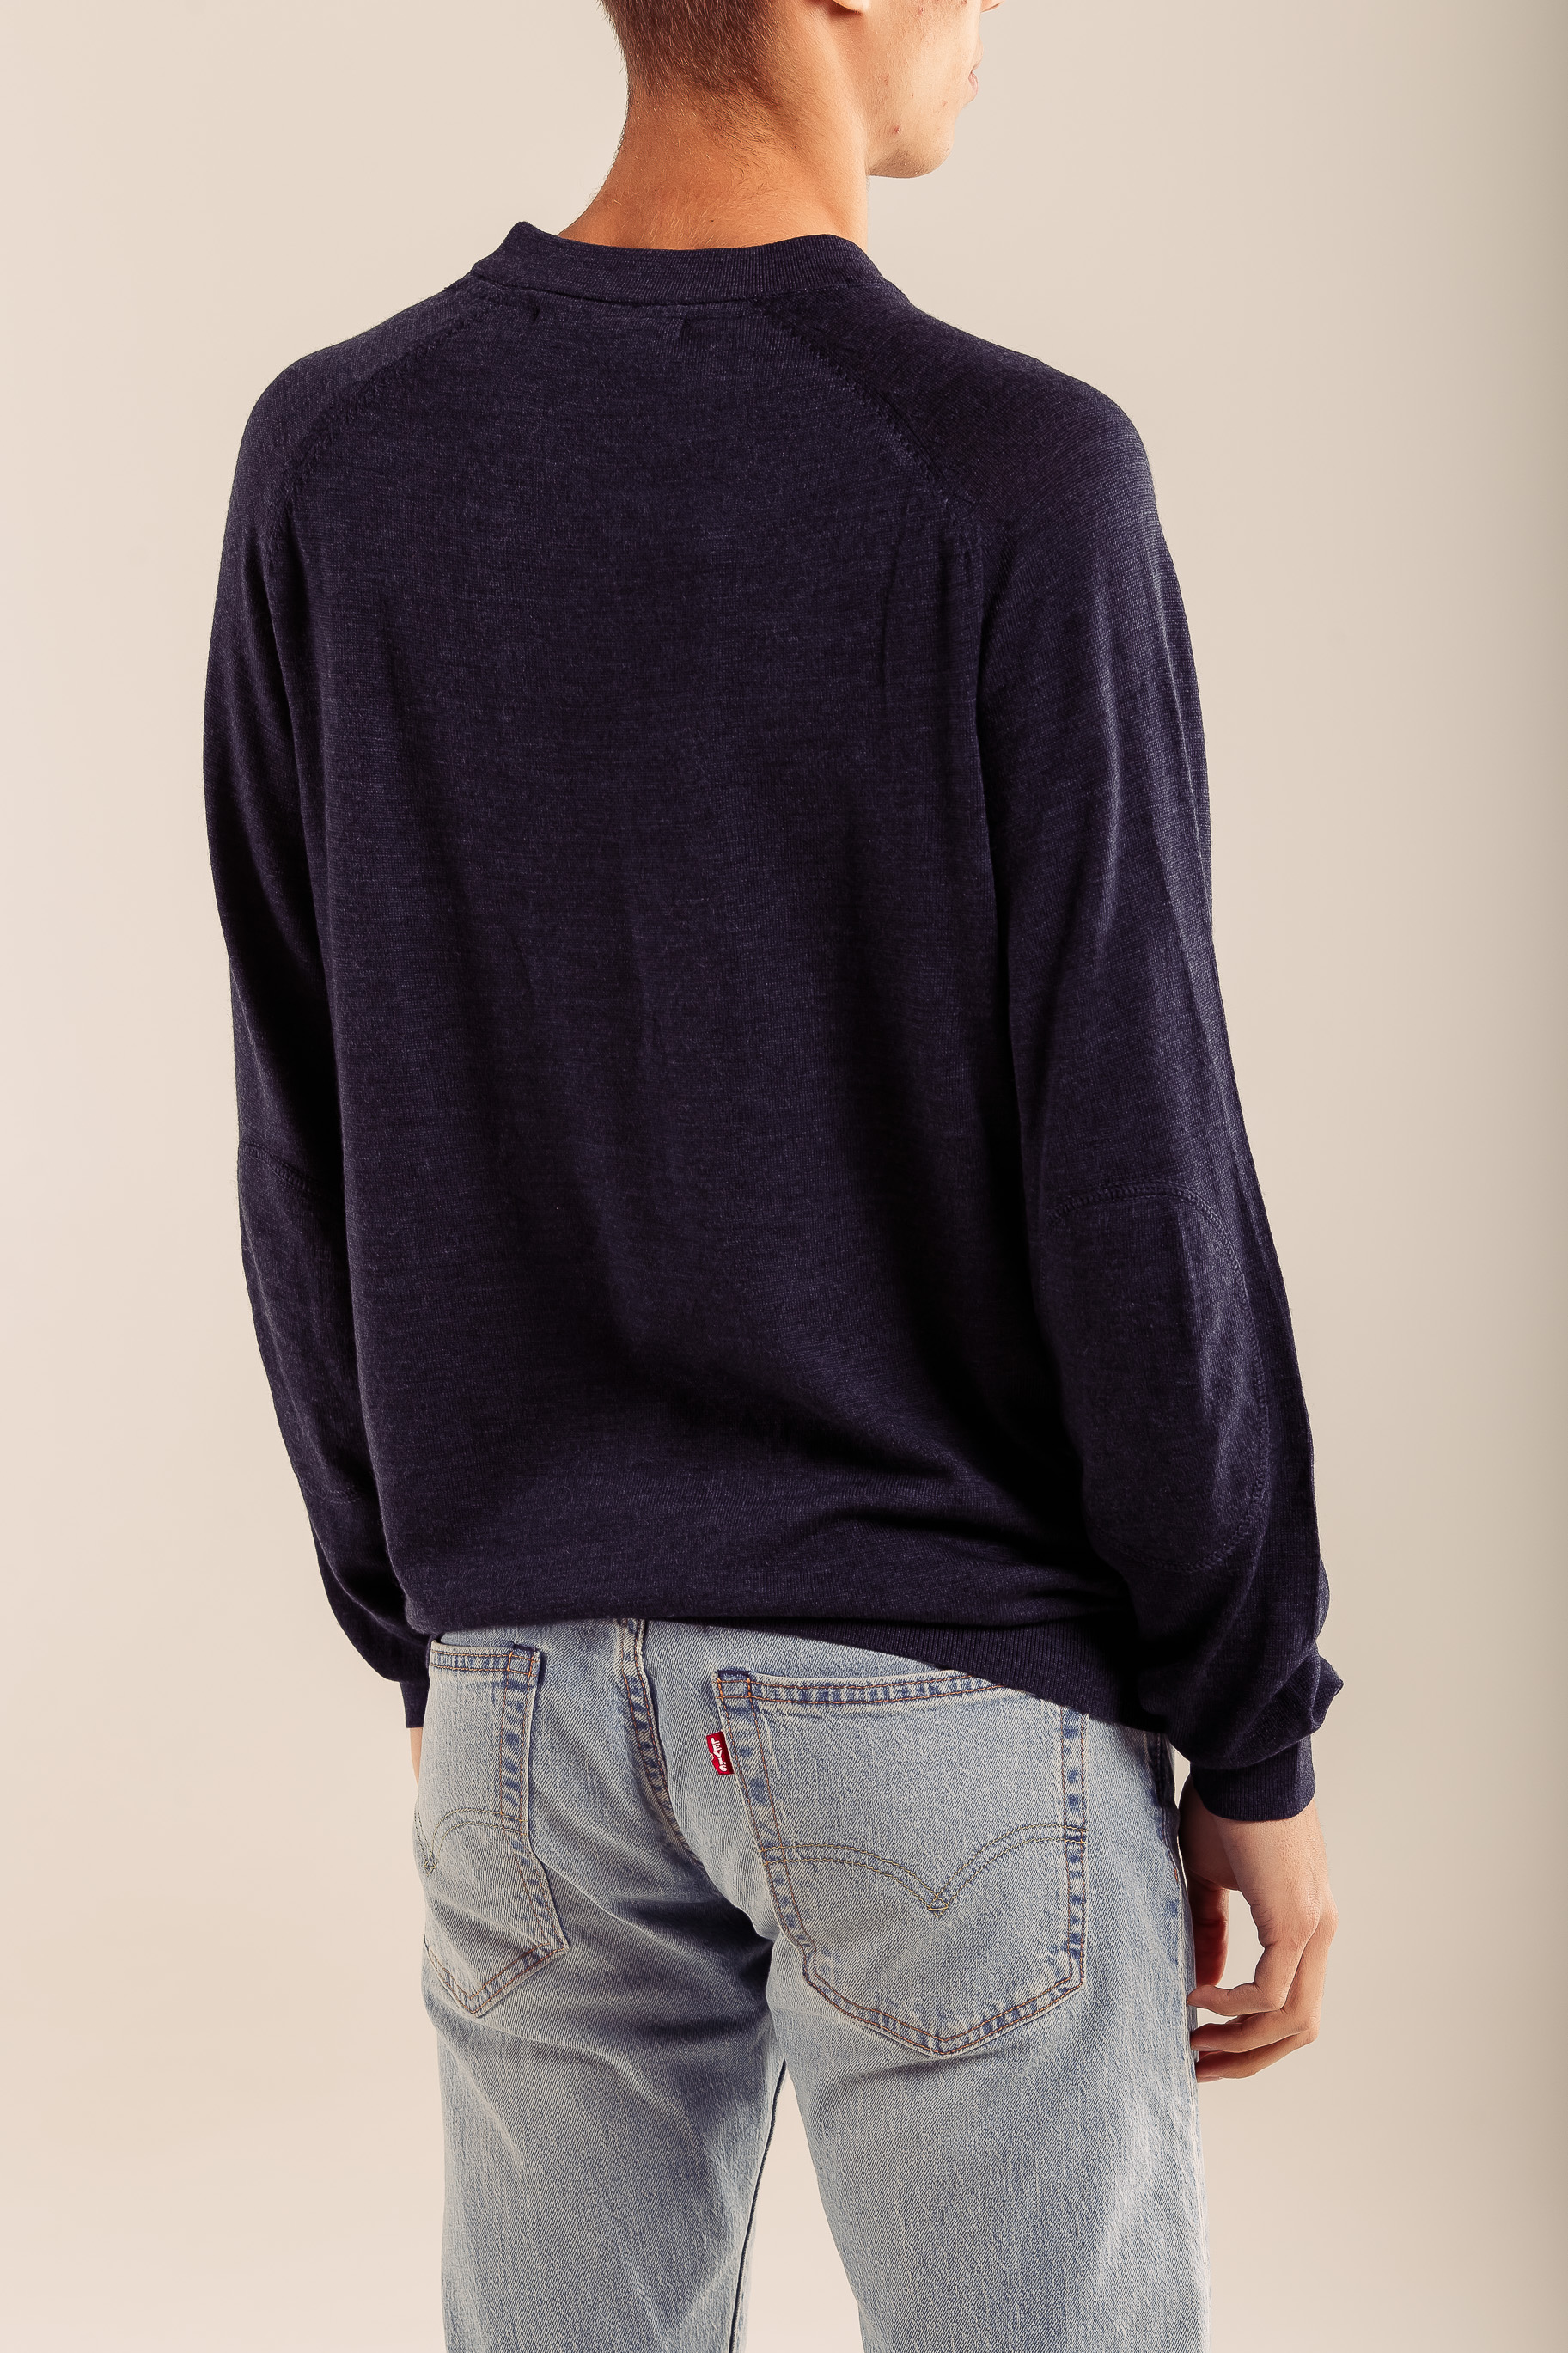 Pulover Selected Casual (4389) photo 0